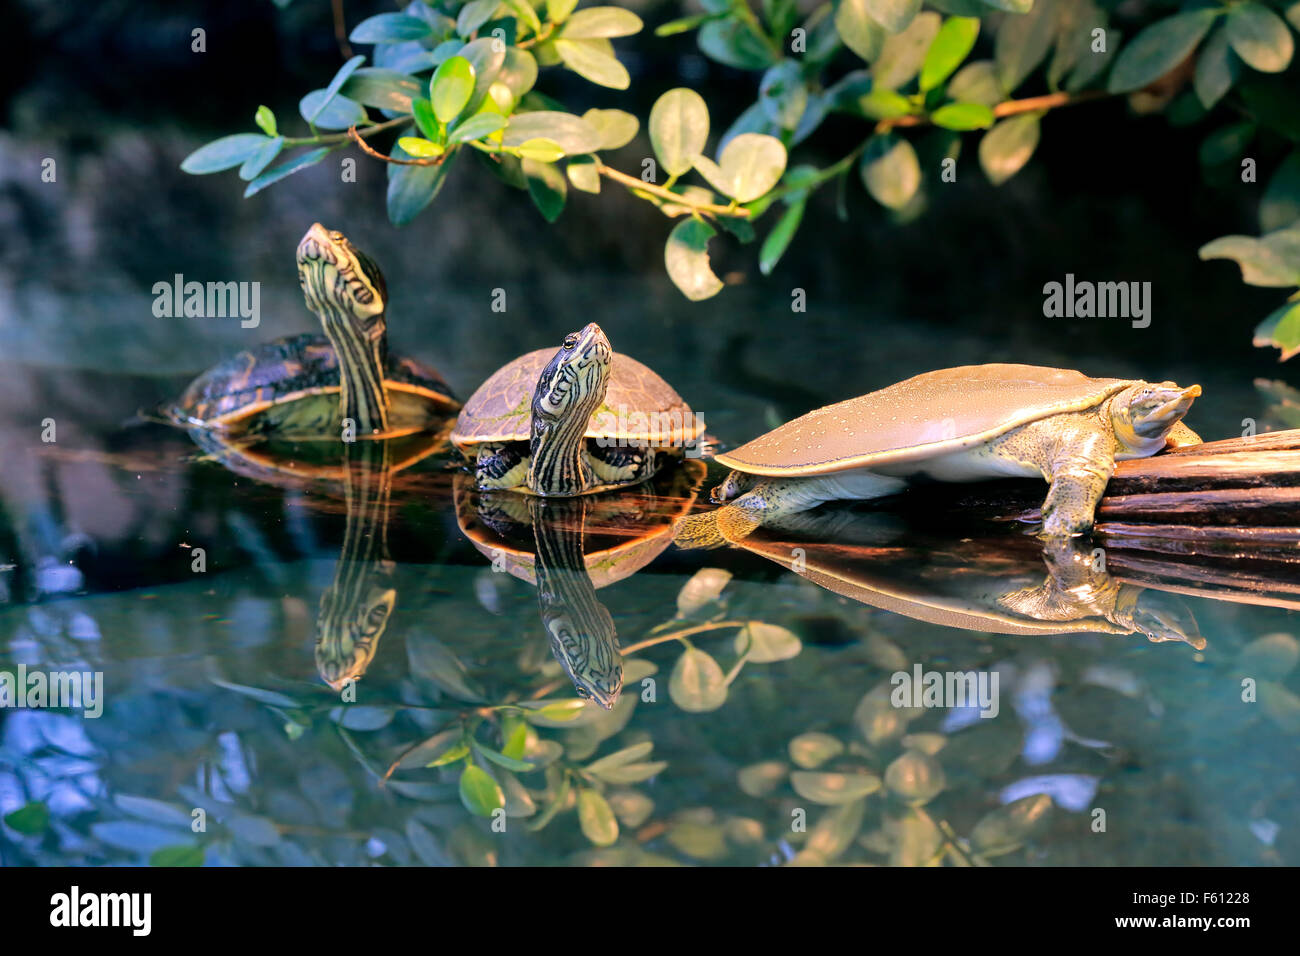 Spiny softshell turtle (Apalone spinifera) and red-eared slider or red-eared terrapin (Trachemys scripta elegans), - Stock Image